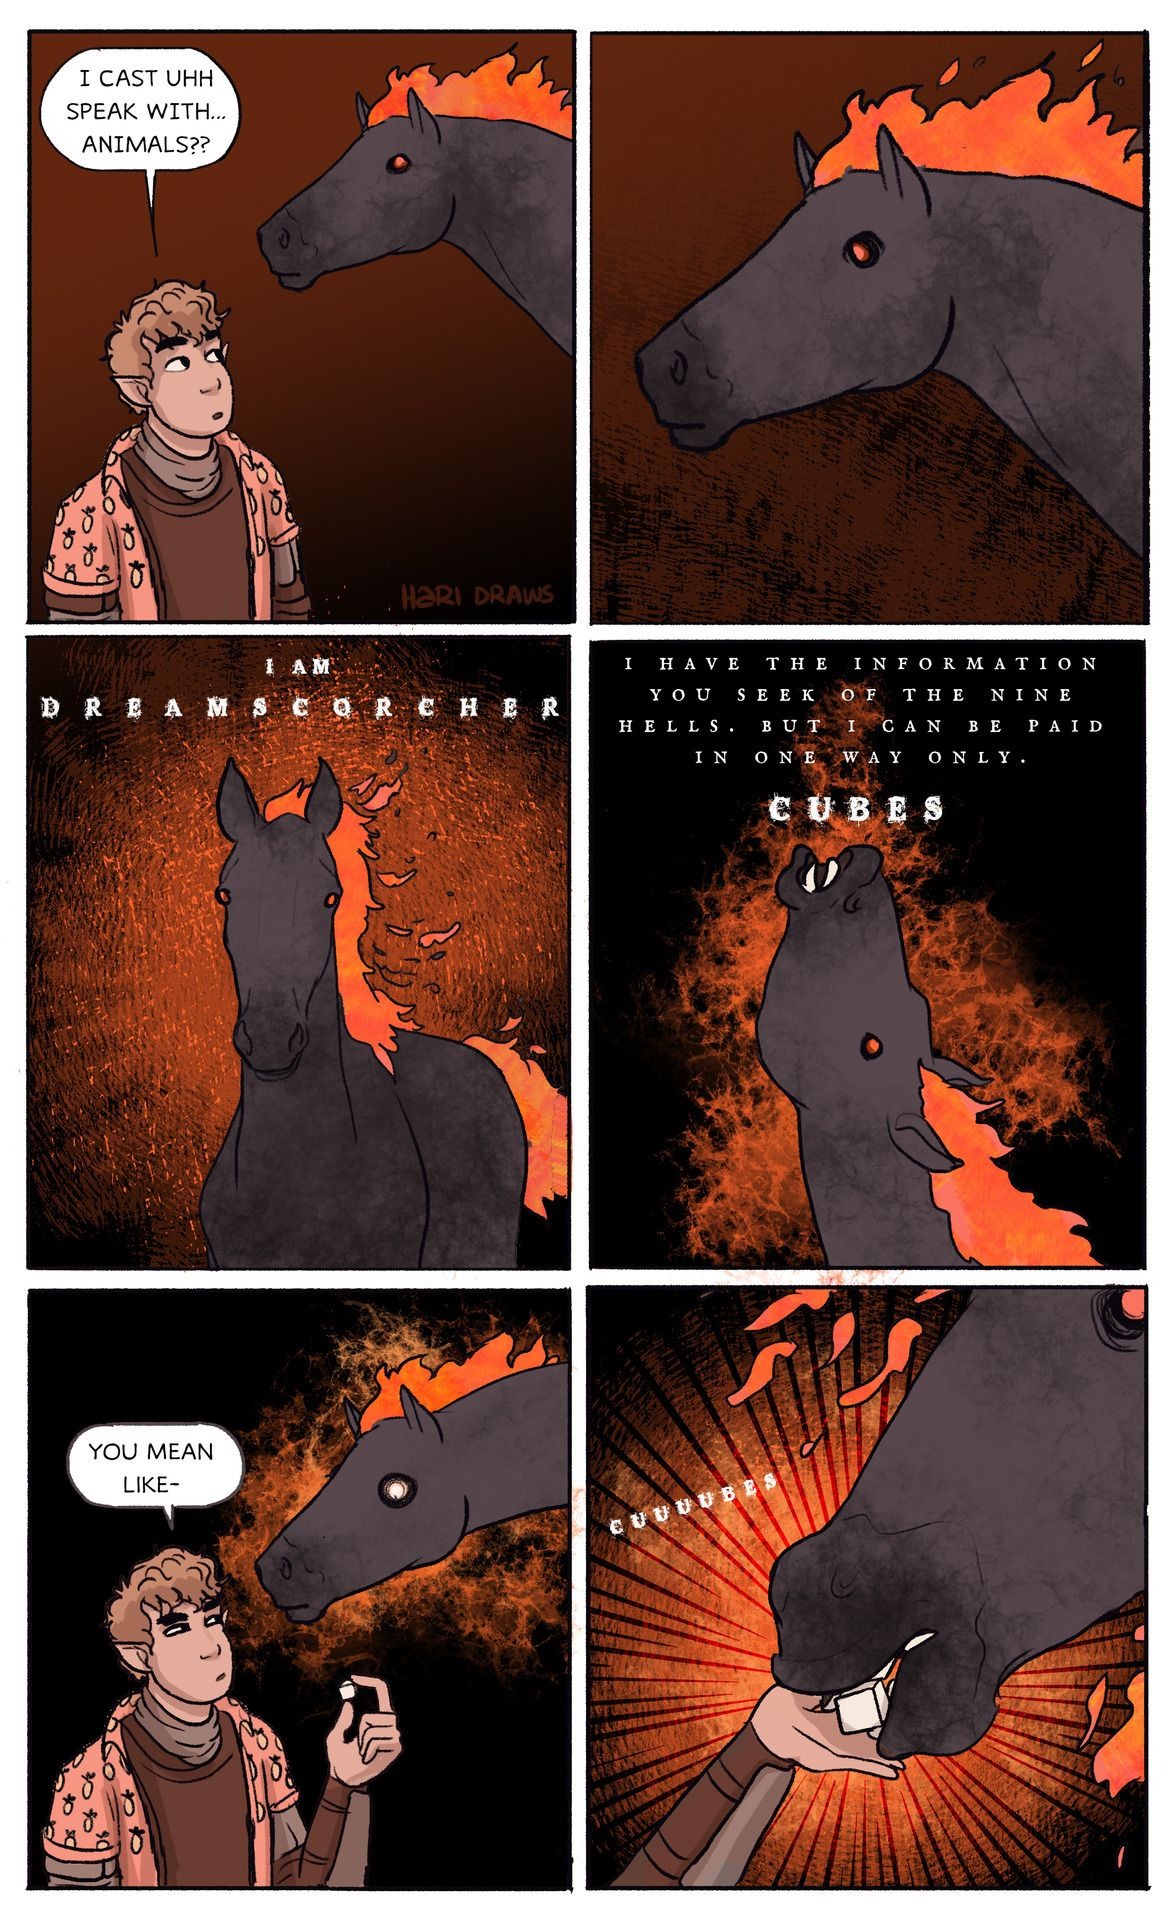 d&d adventures: we stole a nightmare horse from a... - Hari Conner illustration